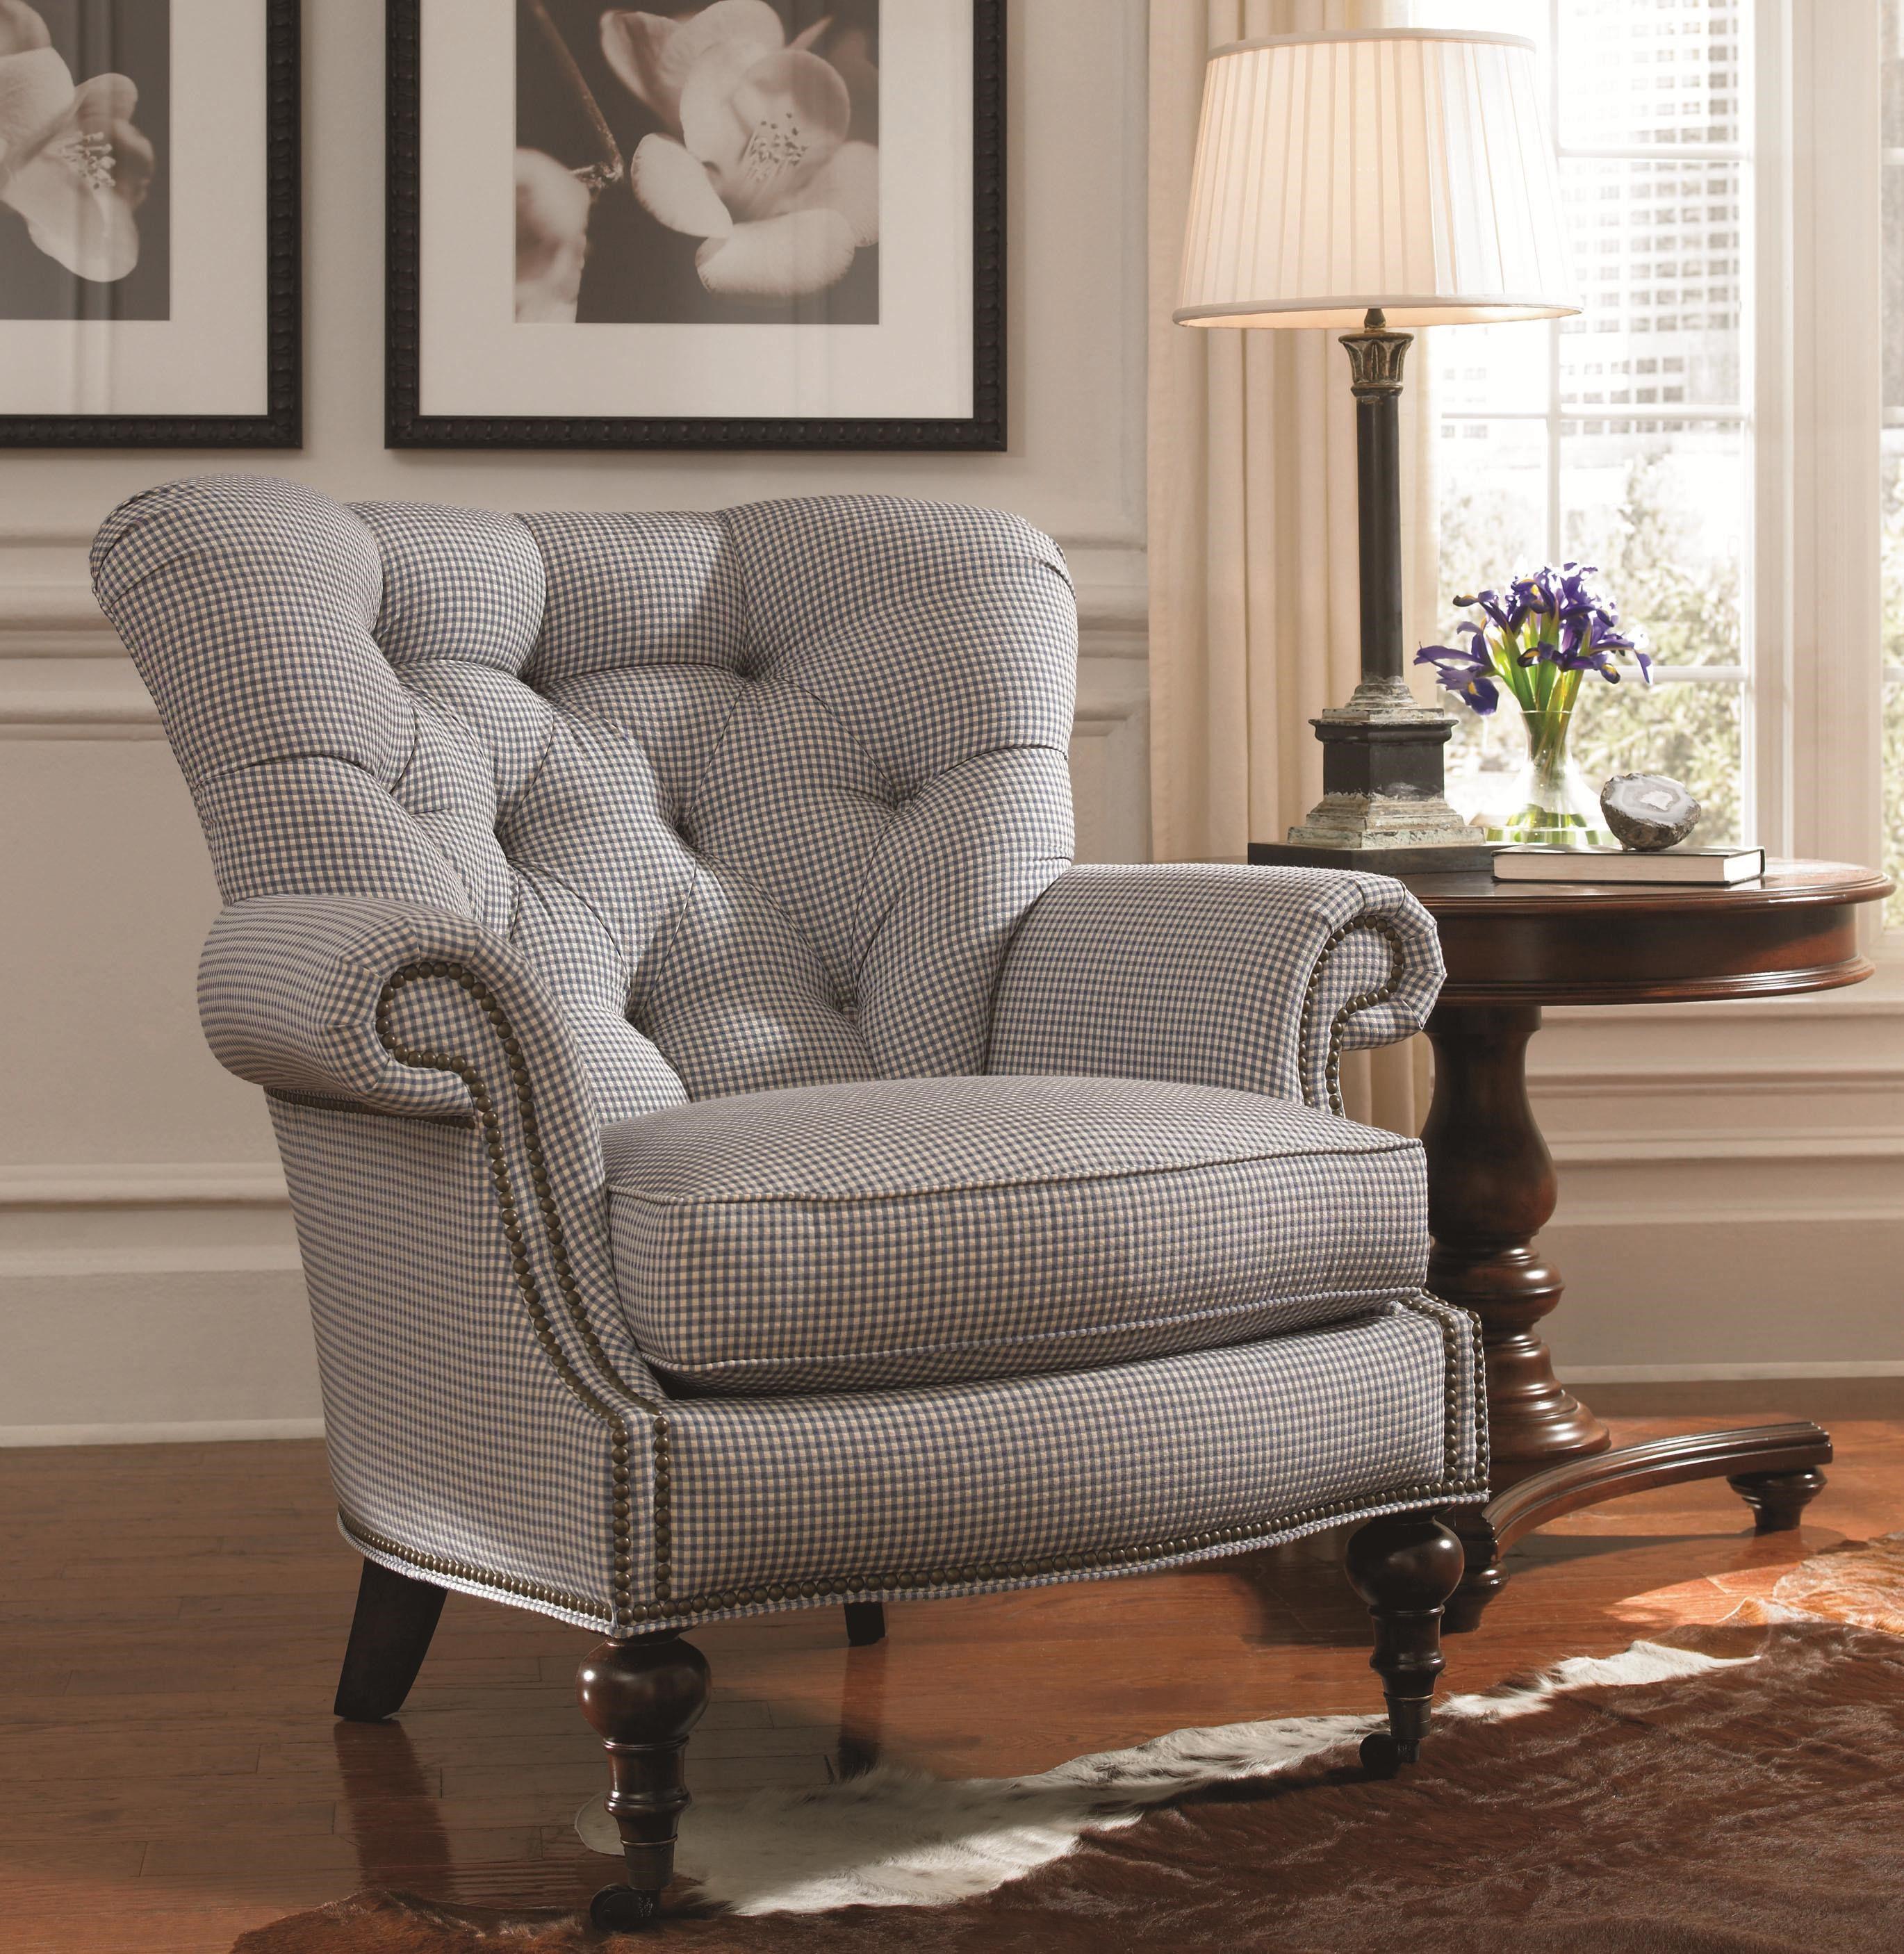 Ordinaire Shown With Coordinating Upholstered Ottoman; Thomasville® Upholstered Chairs  And OttomansVienna Tufted Back Chair ...